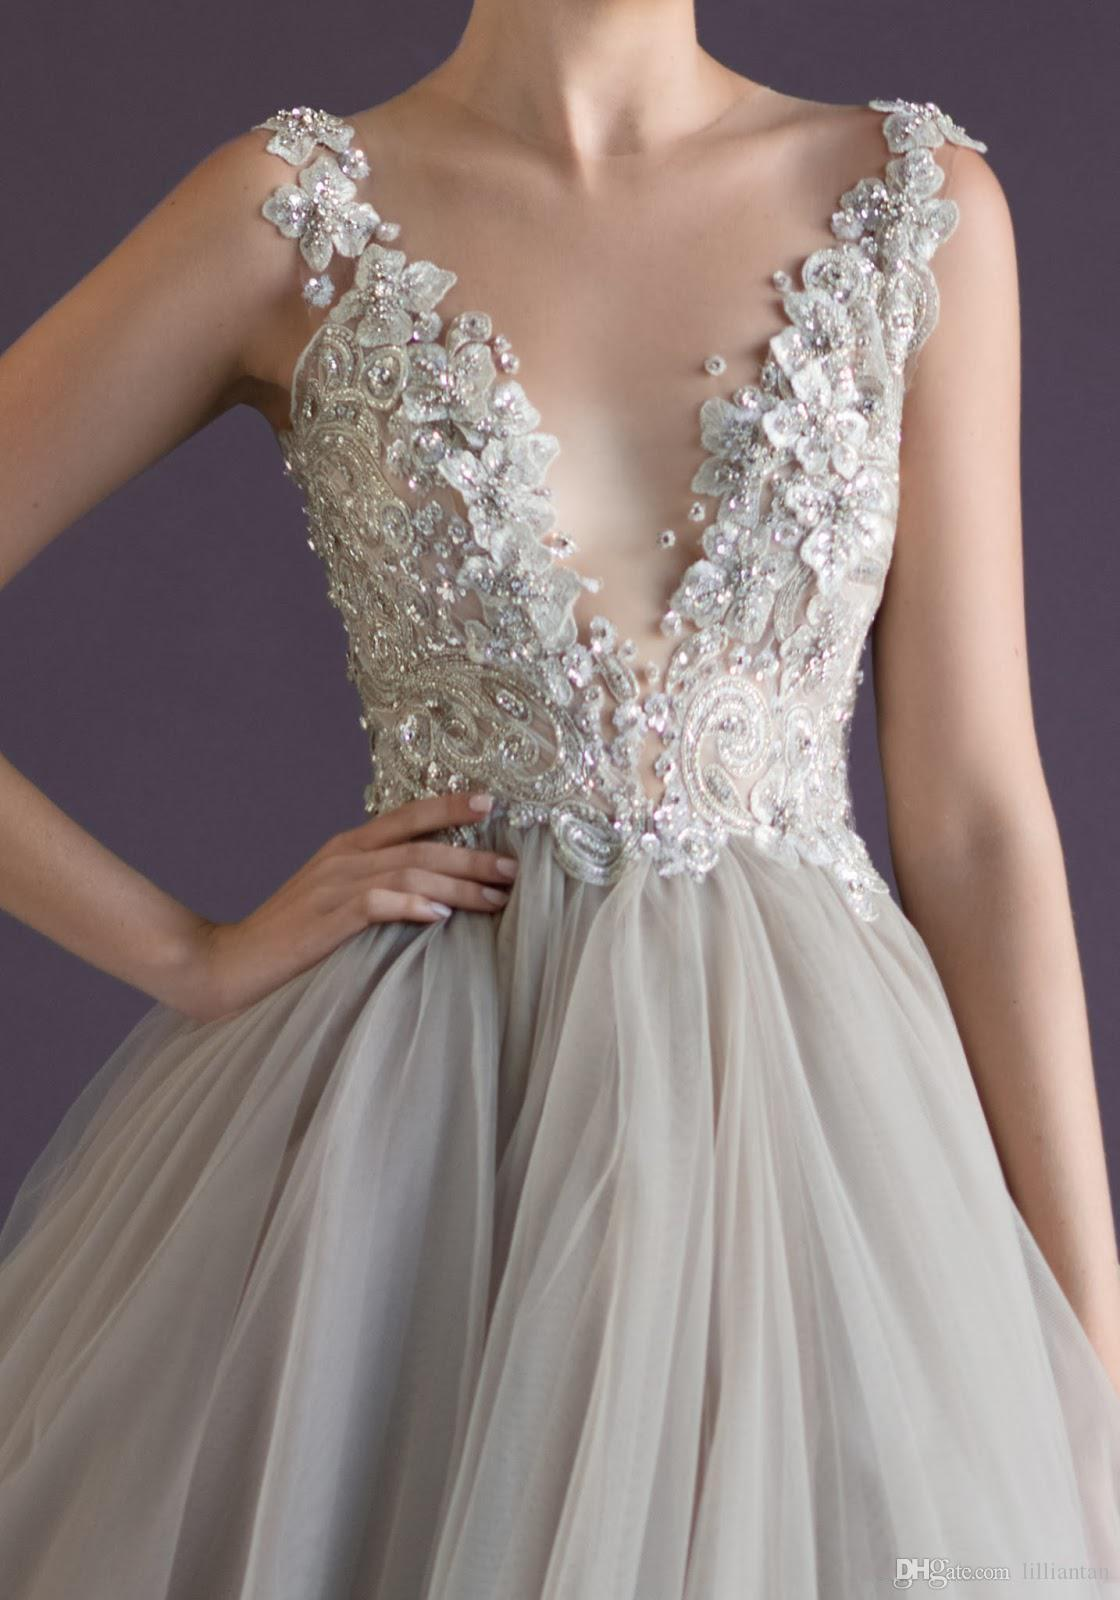 New Arrival Prom Dresses With Crew Backless Appliques Beads A Line Floor Length Tulle Paolo Sebastian Sexy Pageant Party Gowns